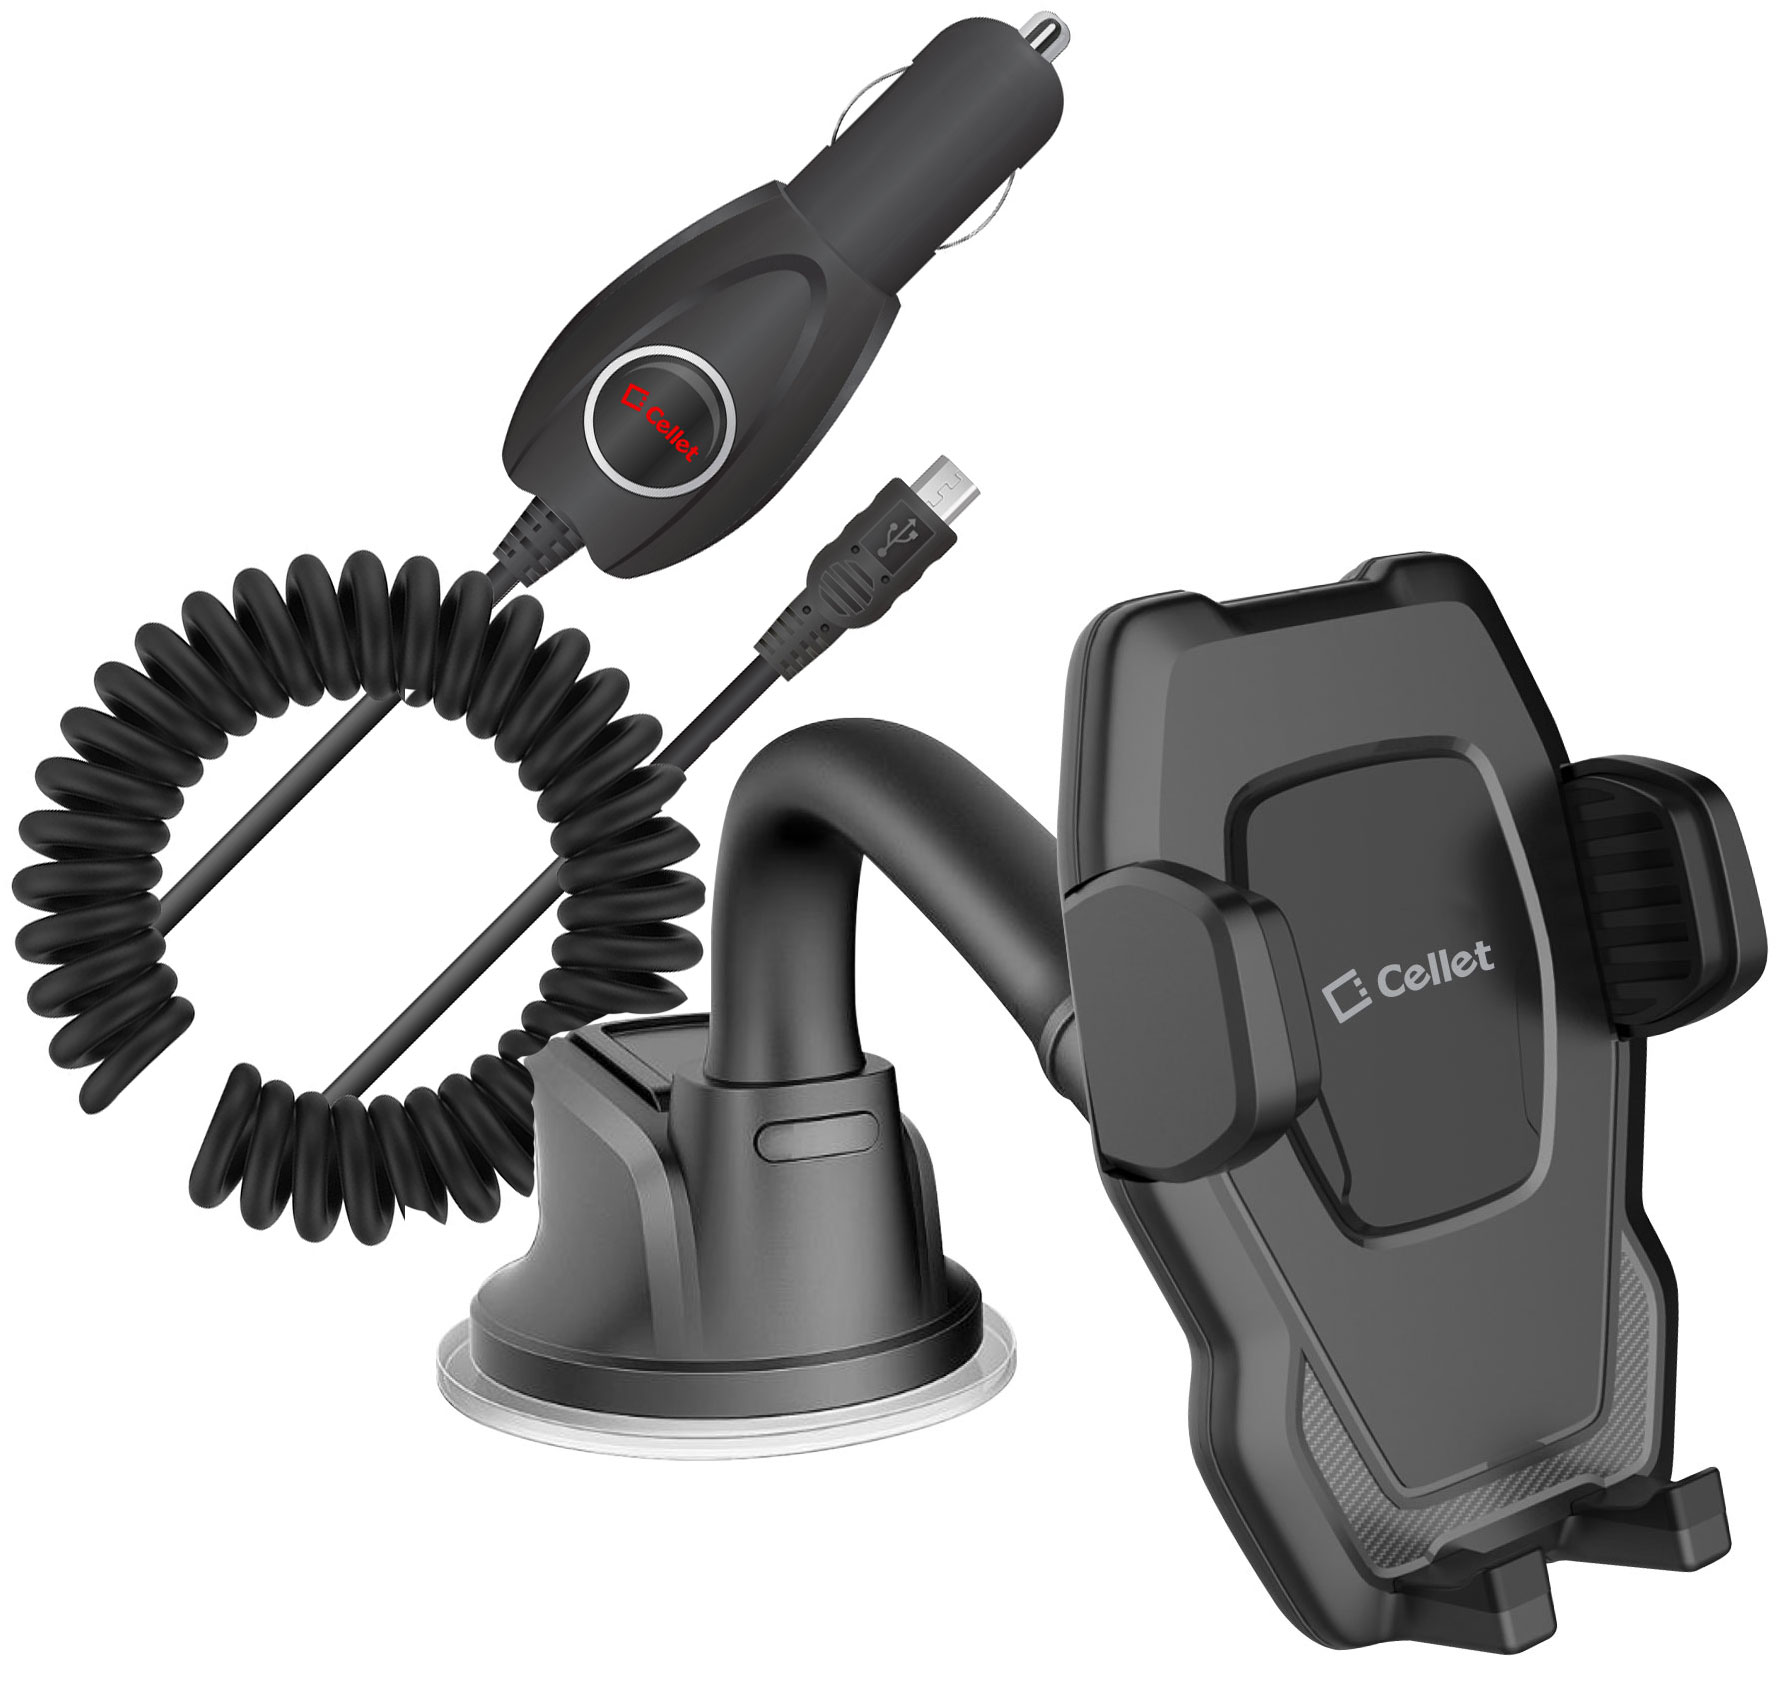 Huawei Union Windshield Phone Holder Goose Neck Car Charger Black